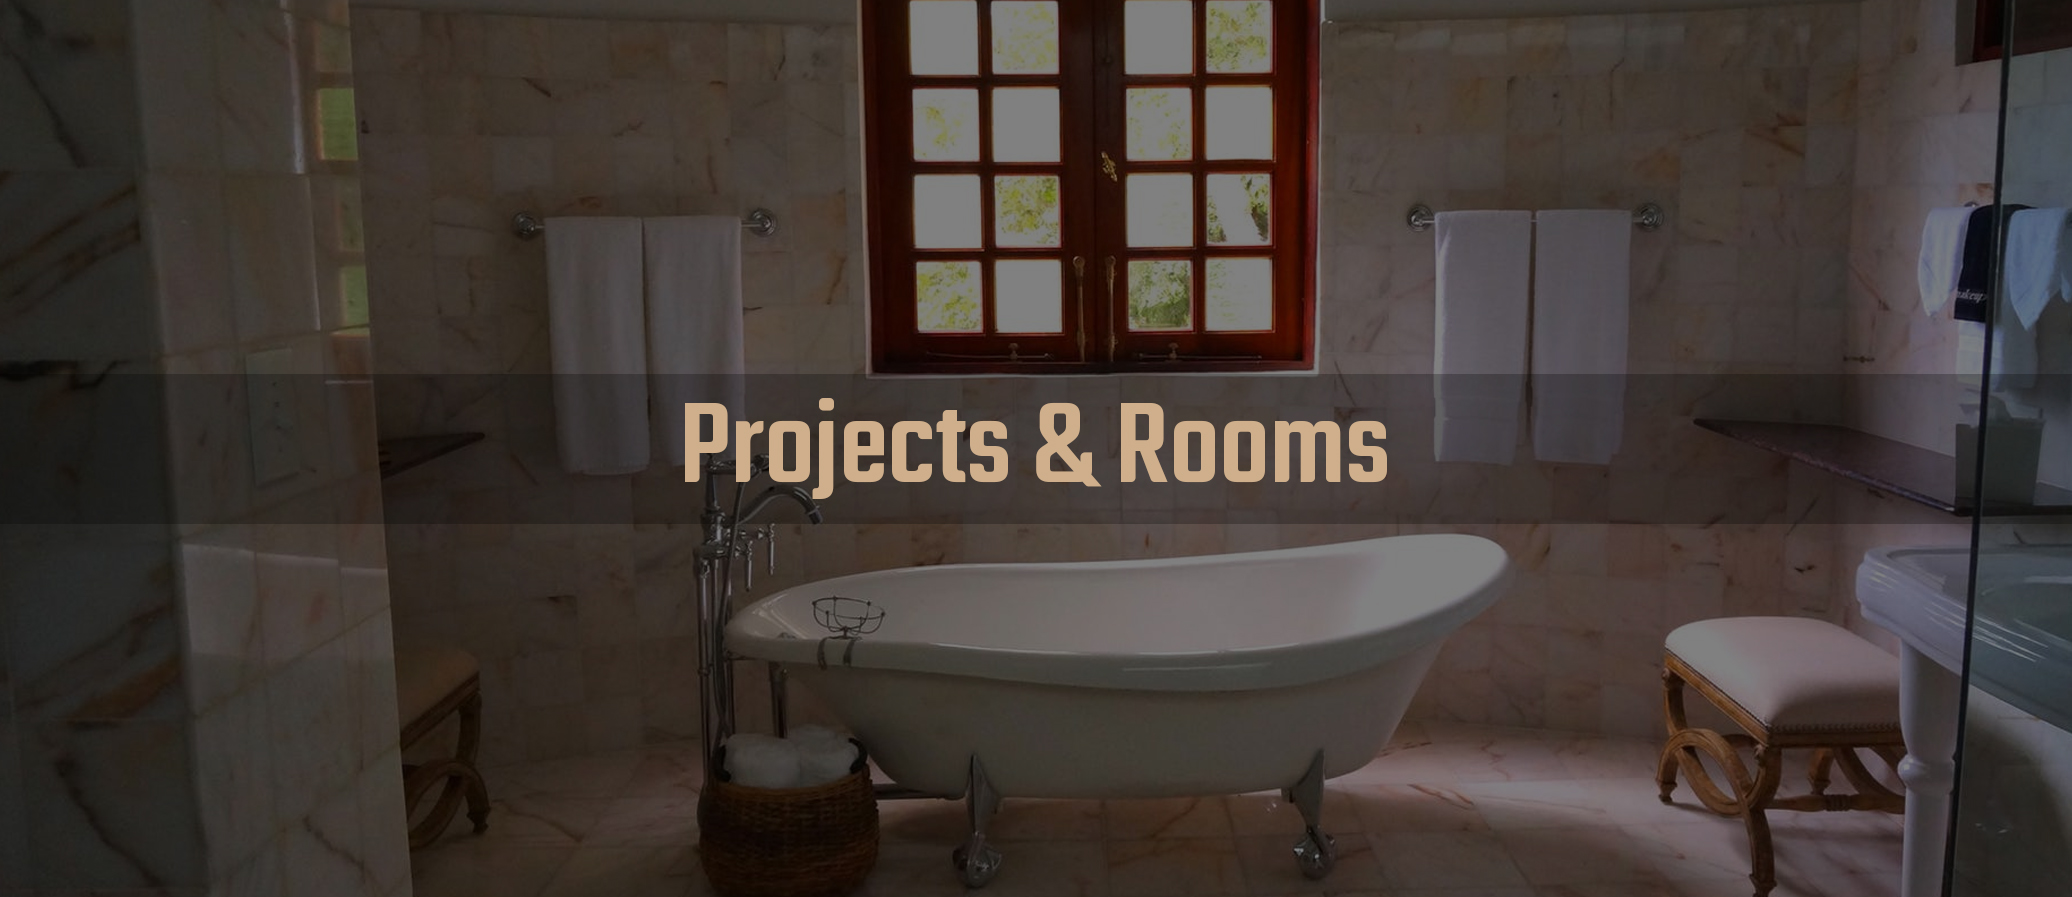 PDW - Sub Page Banner - Portfolios - Projects and Rooms.jpg